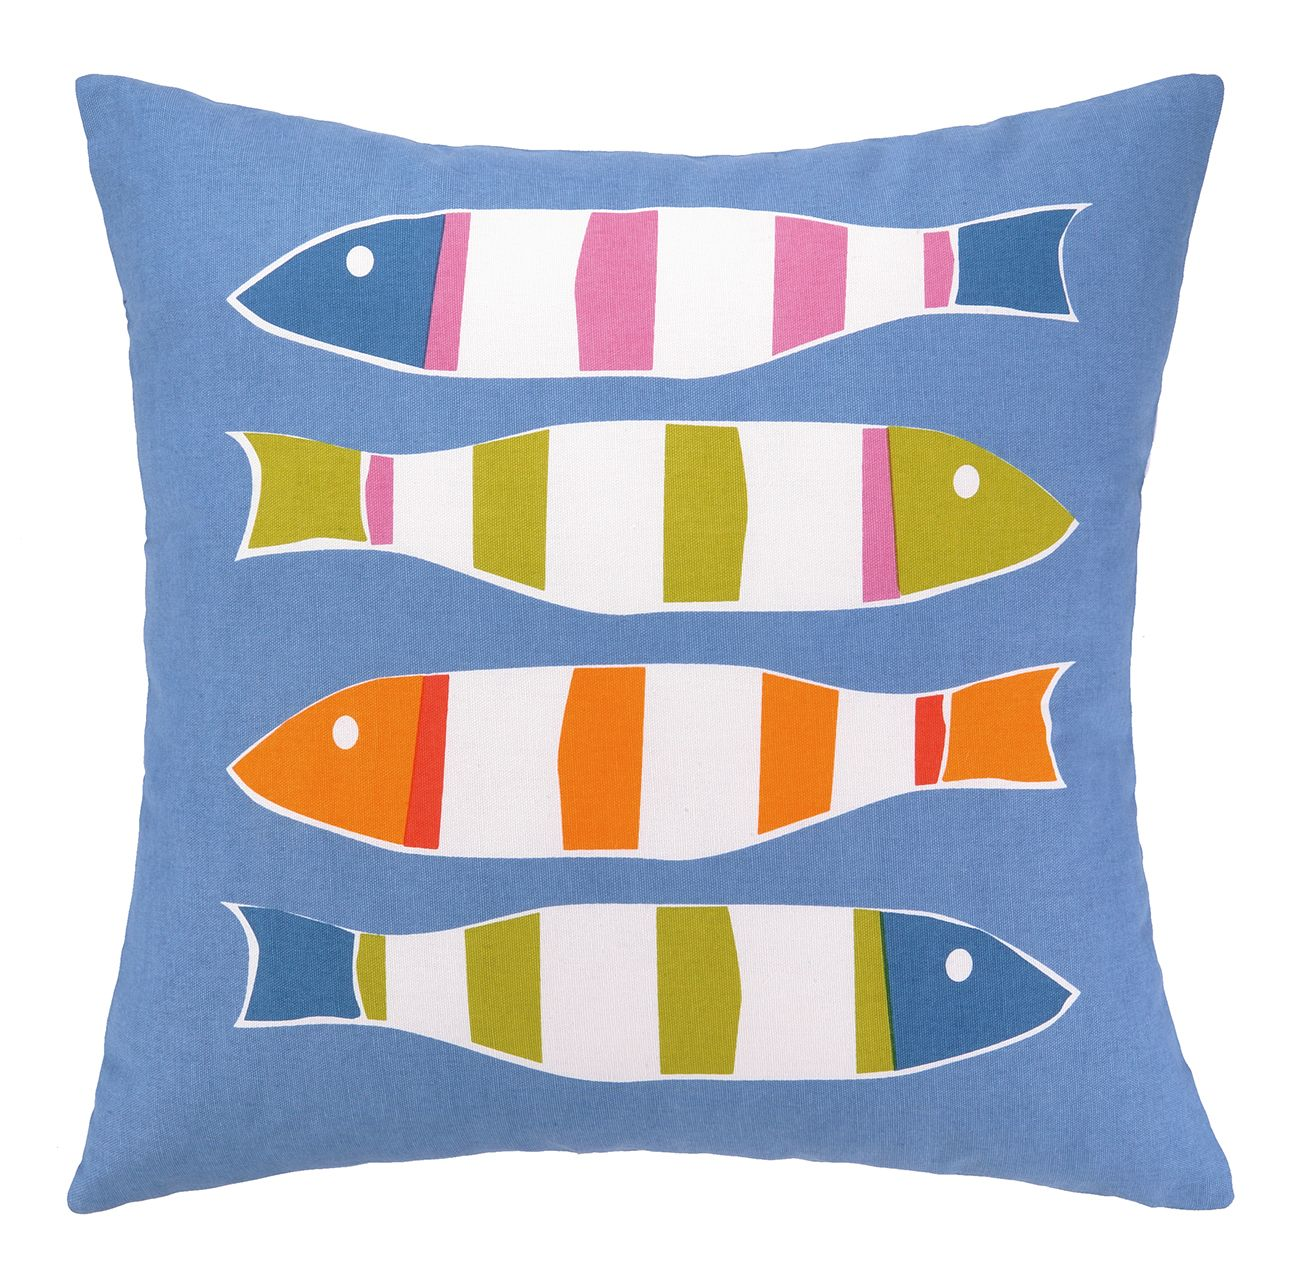 Kate Nelligan Outdoor Blue Picket Fish Pillow 20x20: